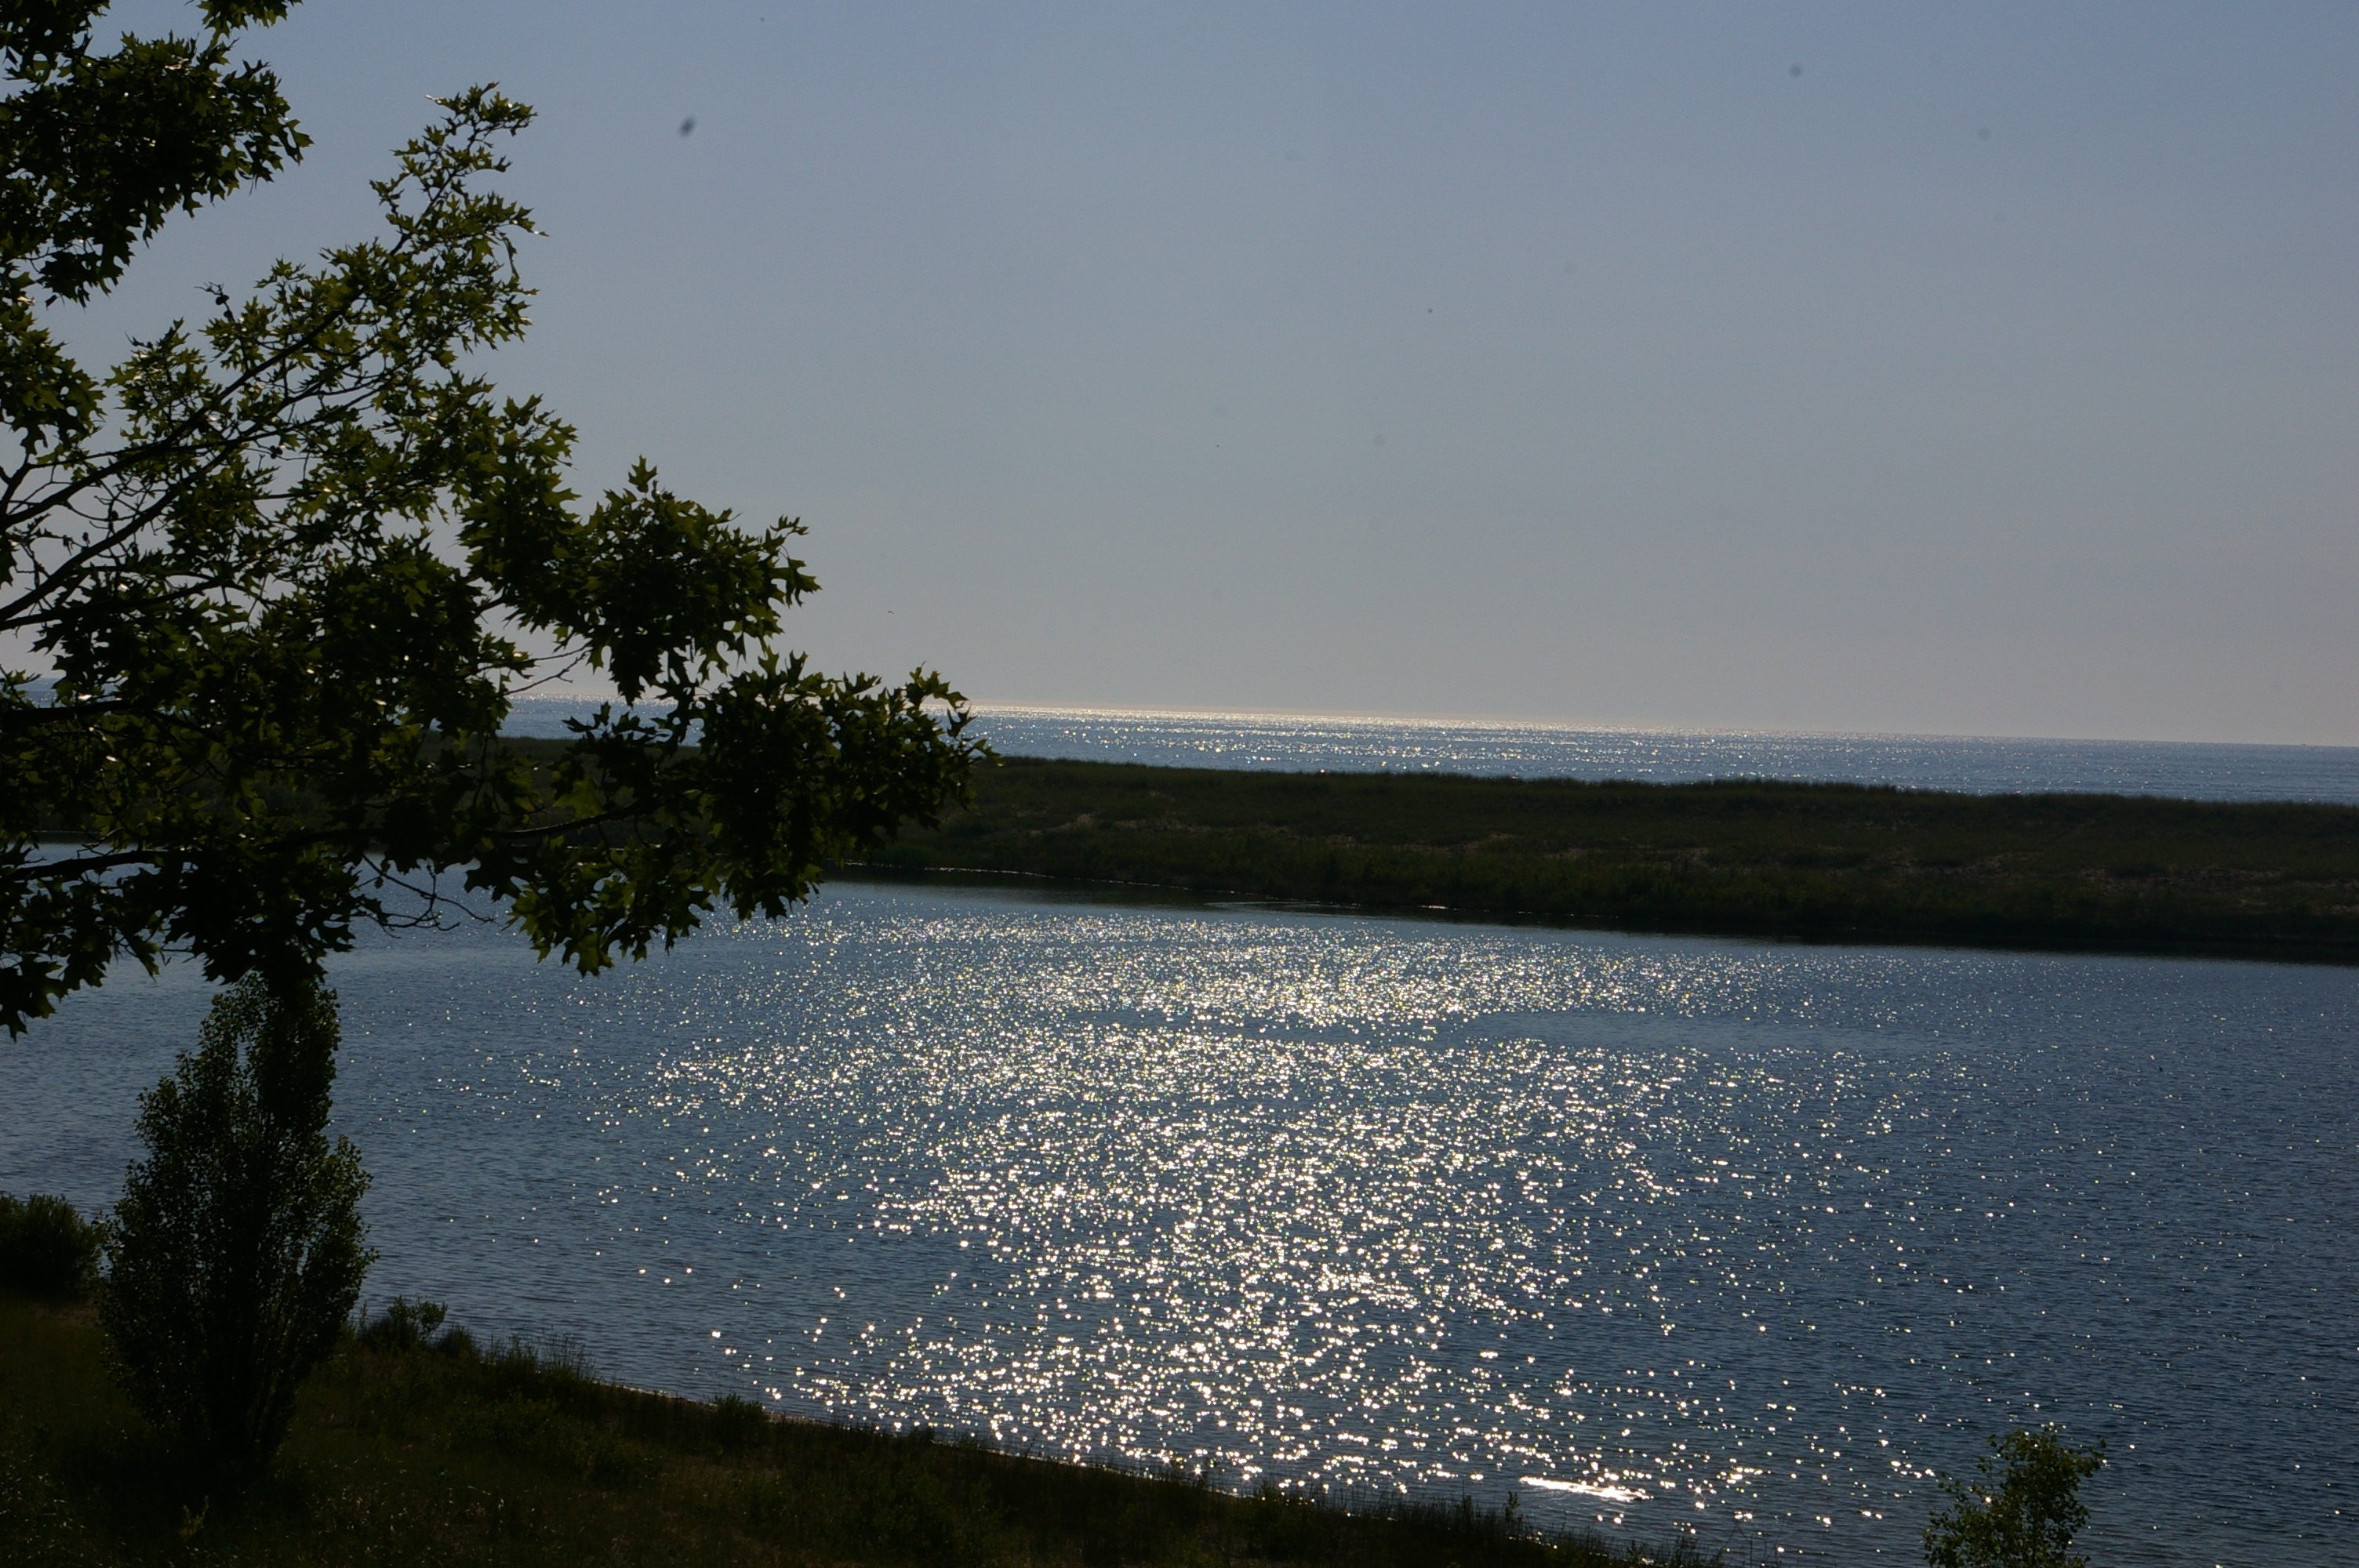 Photo overlooking Man Made Lake that has a tree in the foreground and Lake Michigan can be seen west of the berm